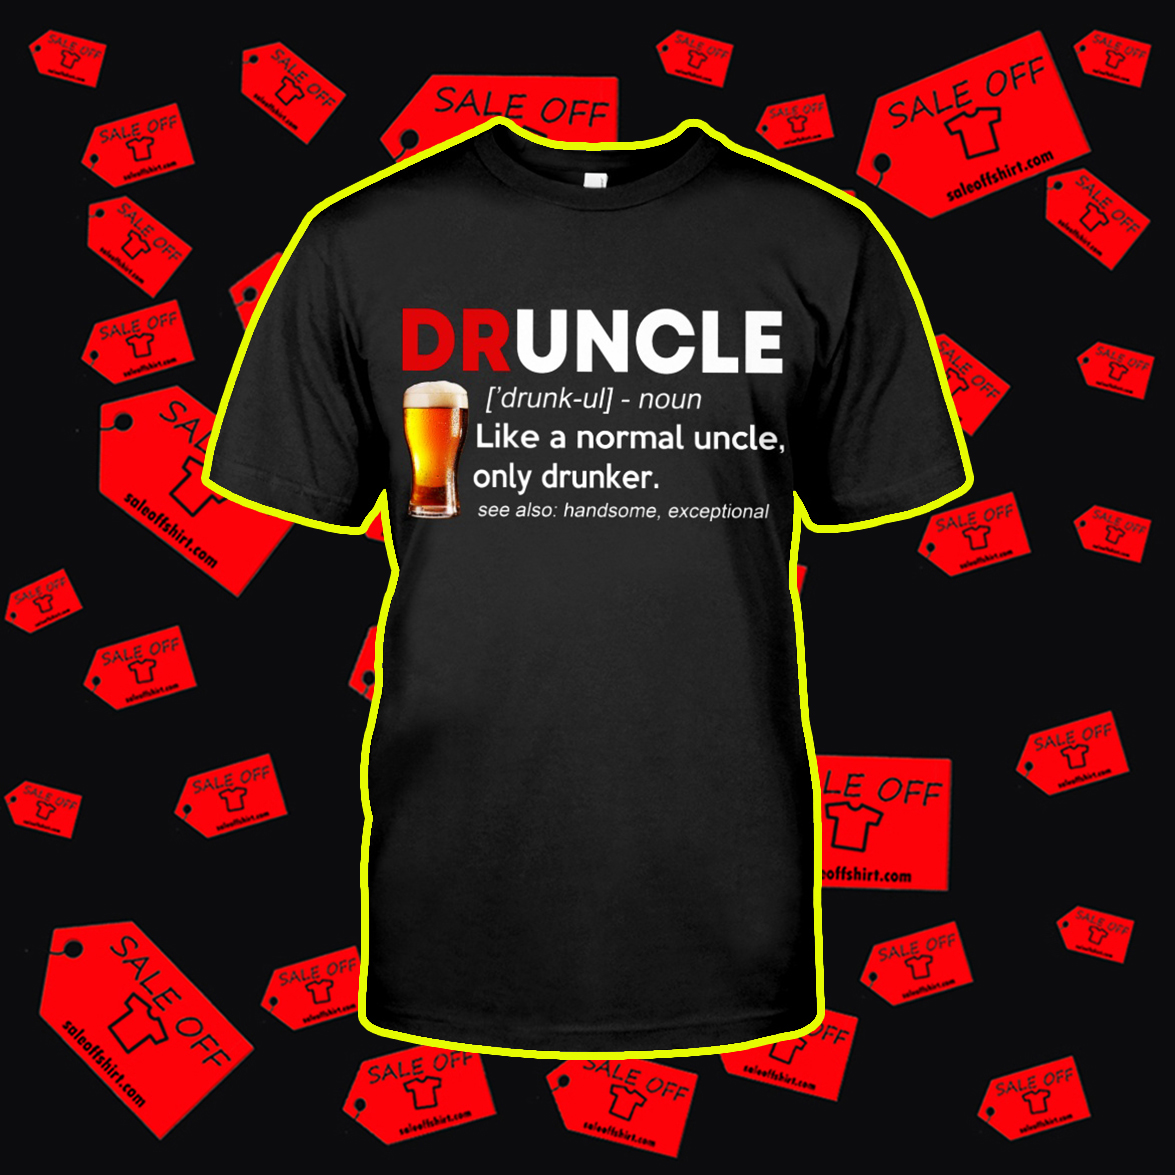 Beer Druncle Like A Normal Uncle Only Drunker shirt